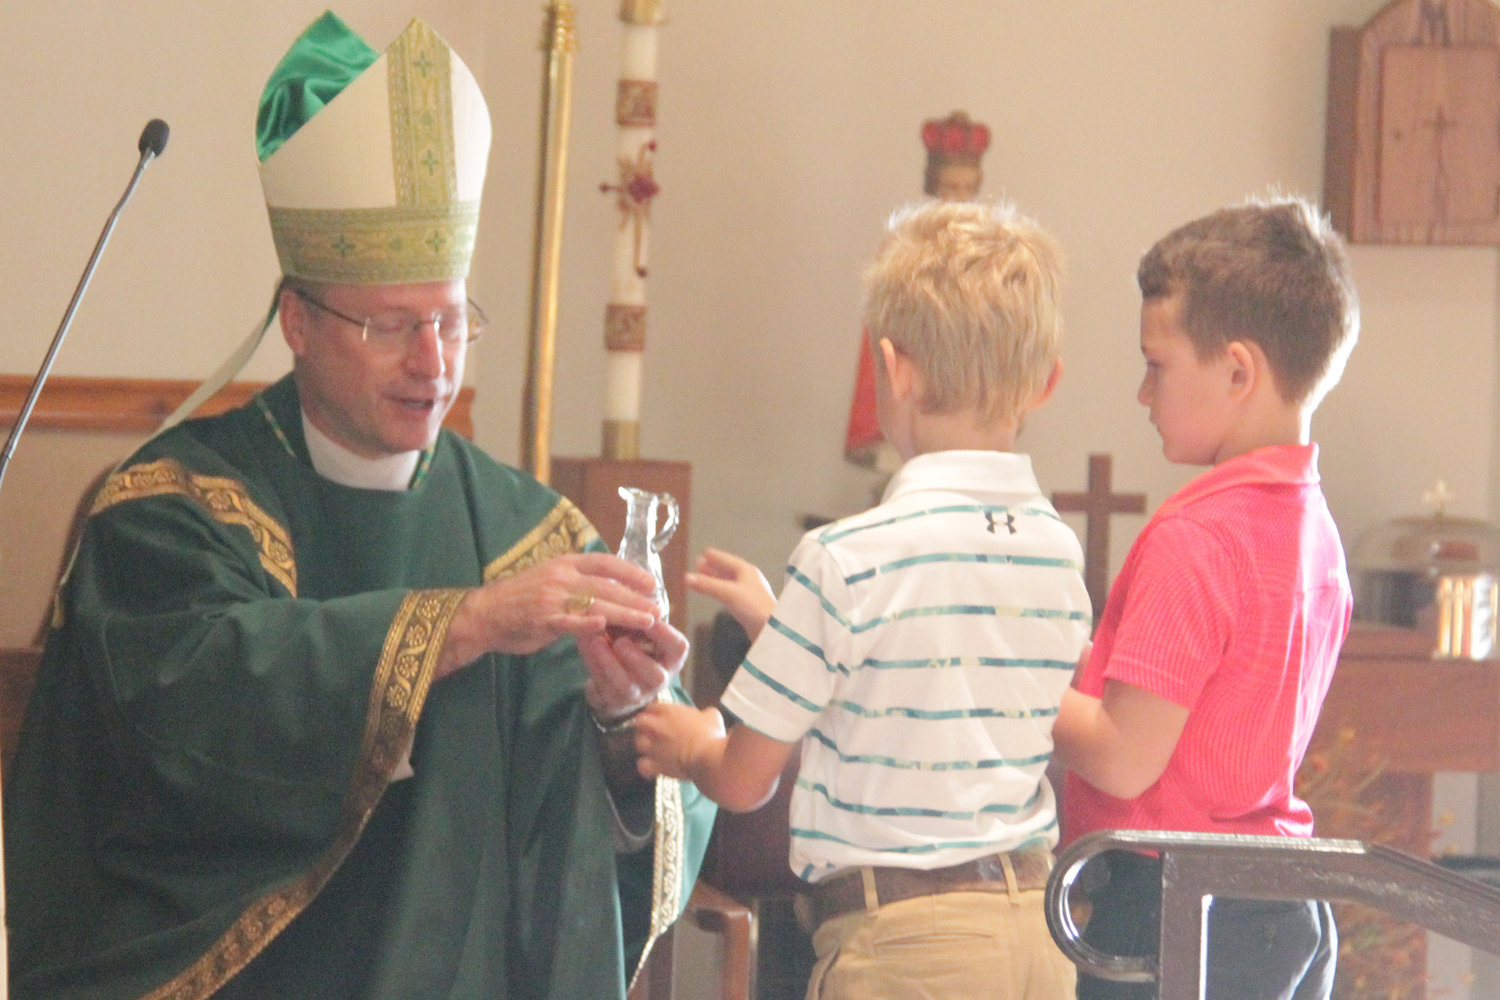 Third-graders at St. Martin School in St. Martins carry out various liturgical roles at an all-school Mass with Bishop W. Shawn McKnight, whom they invited to visit their school.